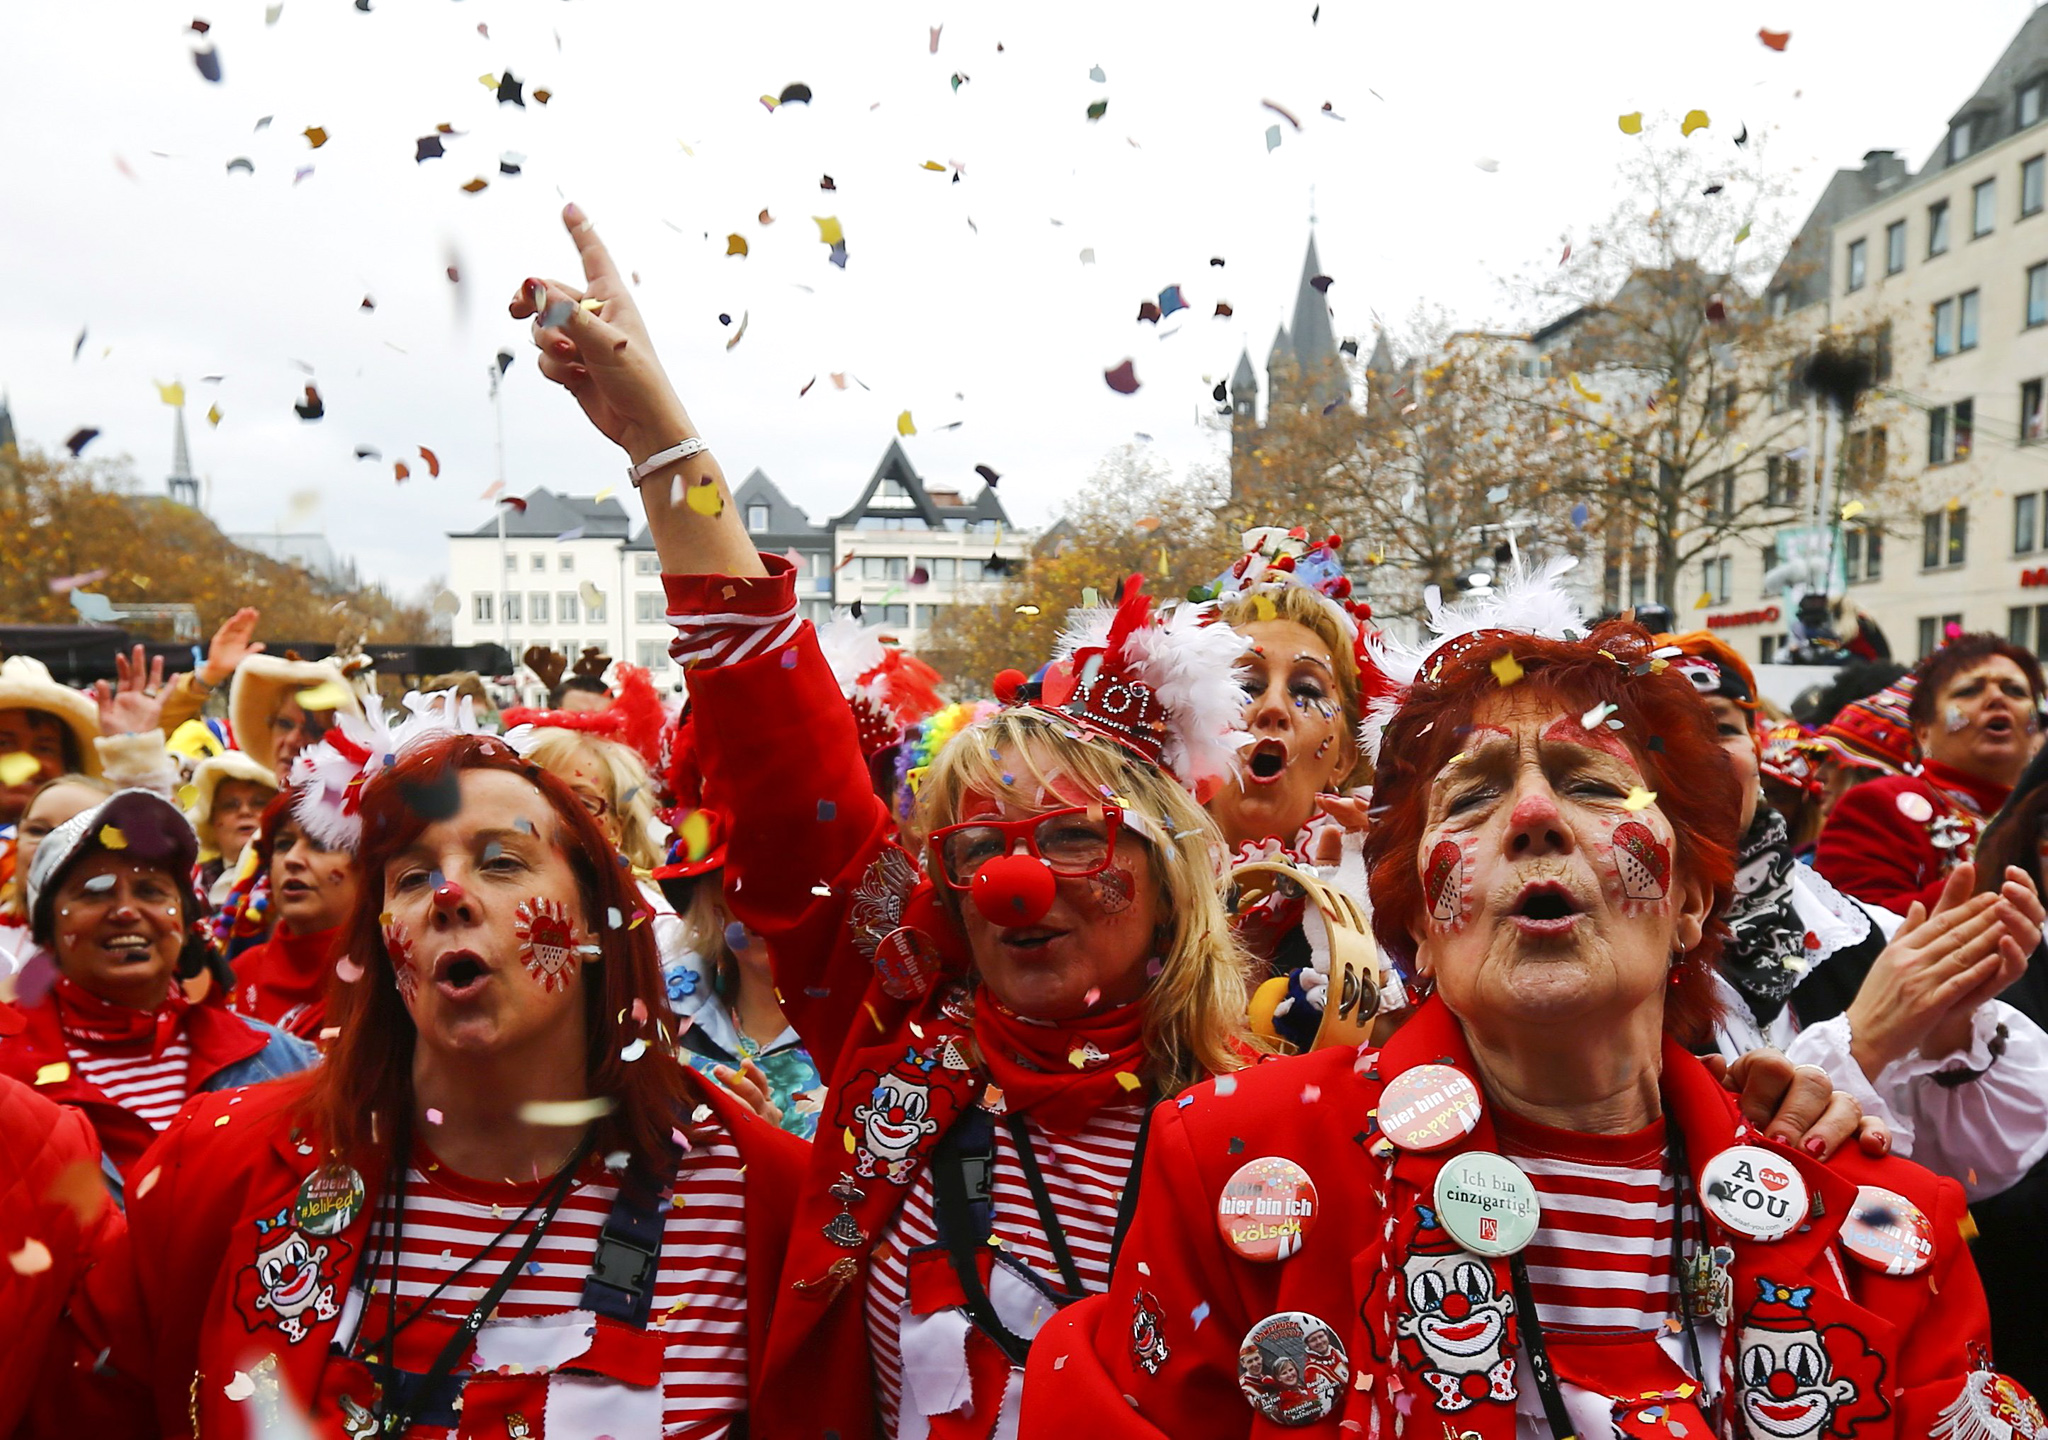 Carnival revellers celebrate the start of the carnival season in Cologne...Carnival revellers throw confetti as they celebrate the start of the carnival season in Cologne November 11, 2015. In many parts of Germany, at 11:11am on November 11, people mark the official start of carnival, a season of controlled raucous fun that reaches a climax during the days before Ash Wednesday and the start of Lent.      REUTERS/Wolfgang Rattay